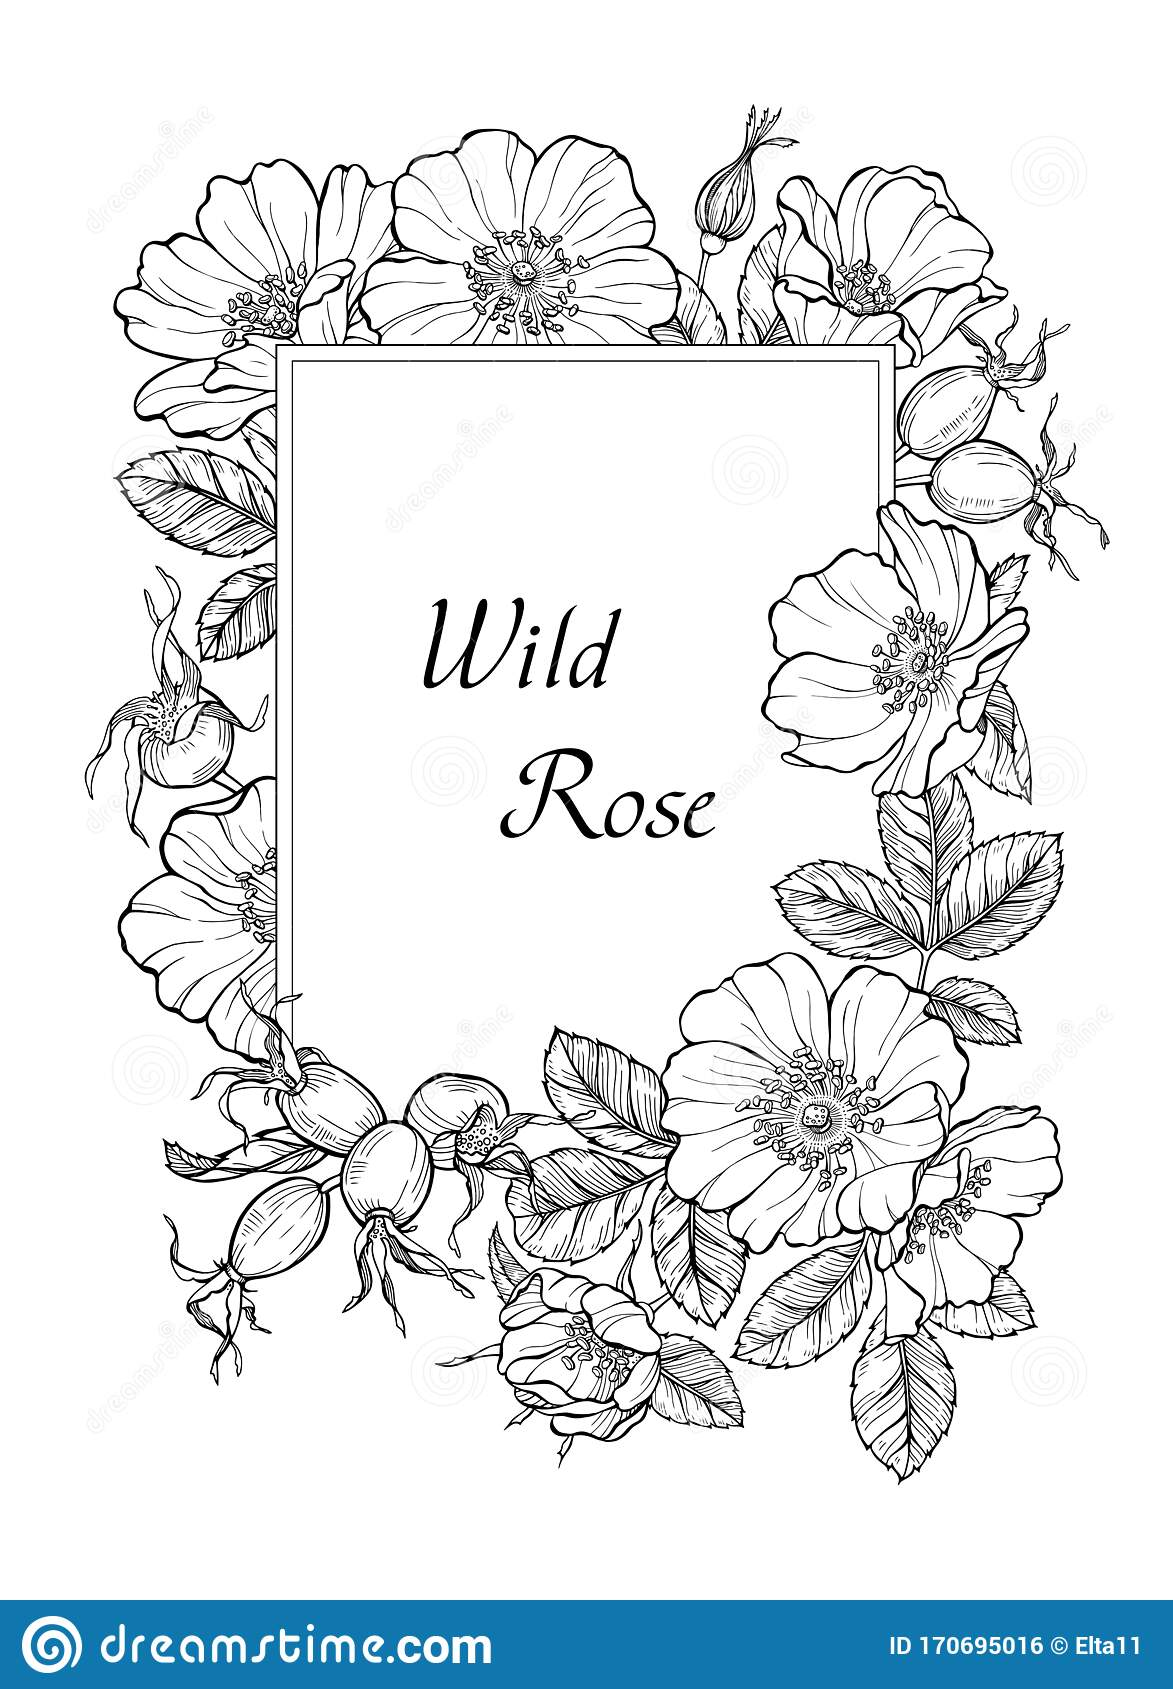 Wild Rose Flowers And Berries Card Template Line Art Drawing Floral Rectangular Border Frame Vector Illustration Stock Vector Illustration Of Decorative Briar 170695016